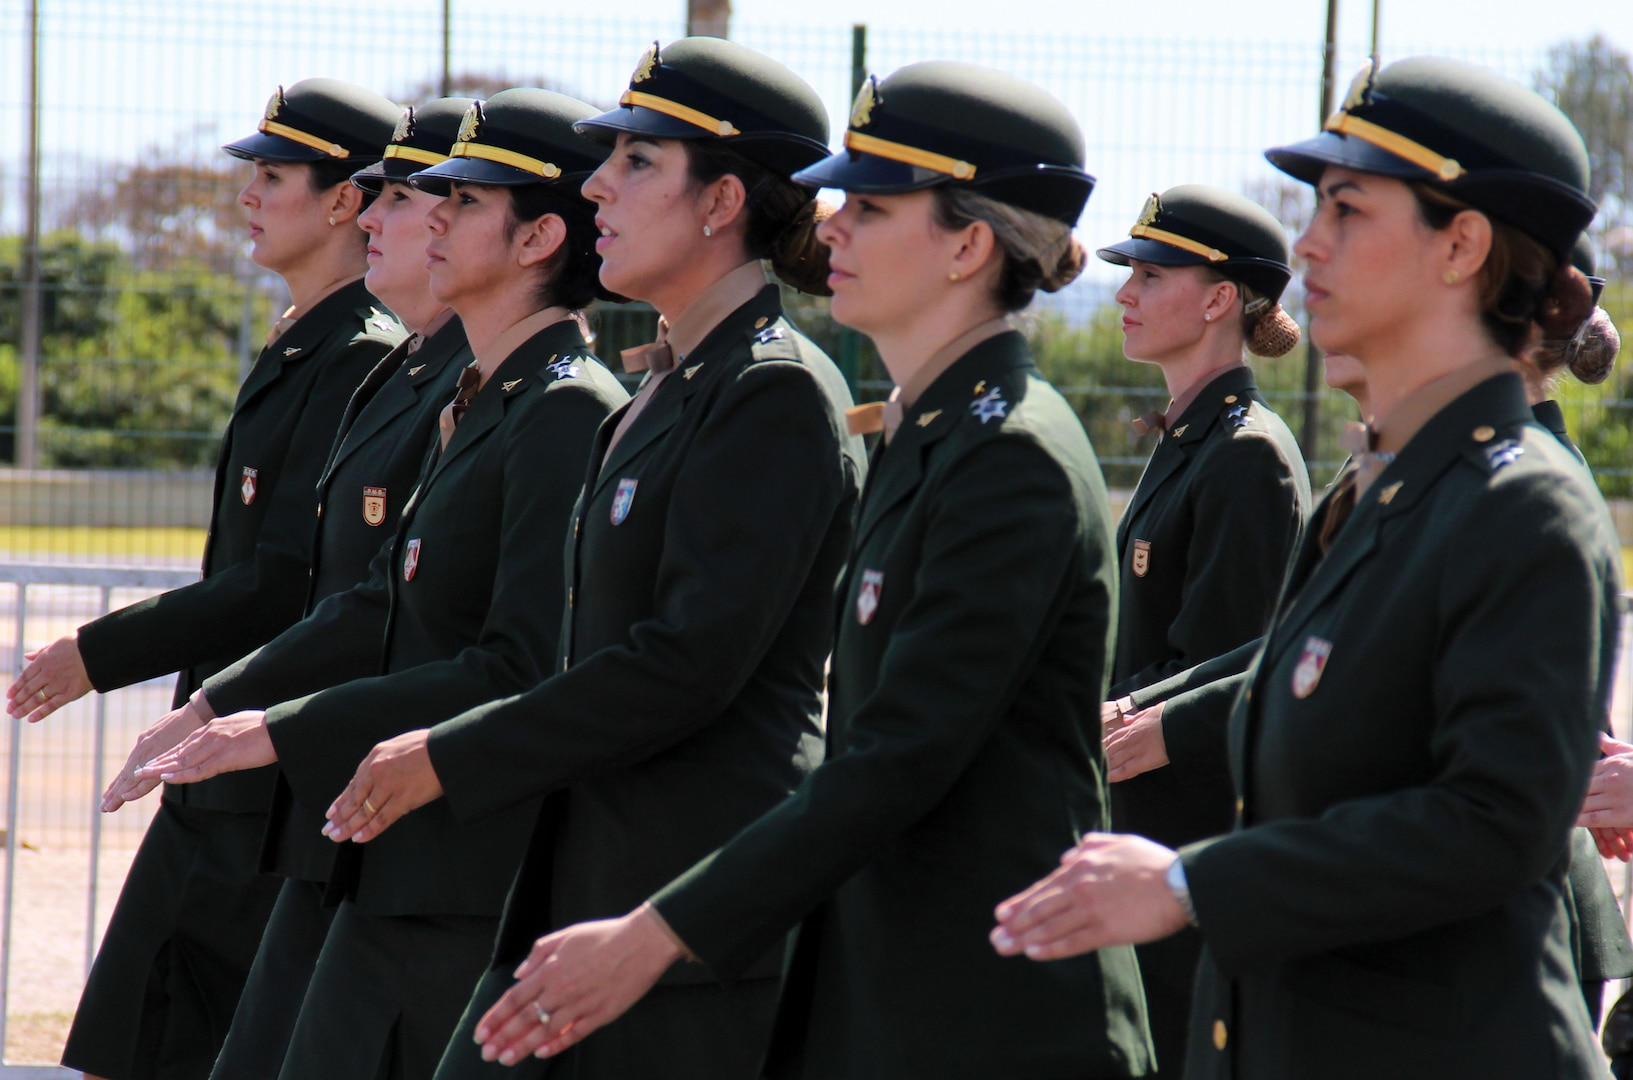 The Brazilian Army was the first army in South America to accept women into its ranks.